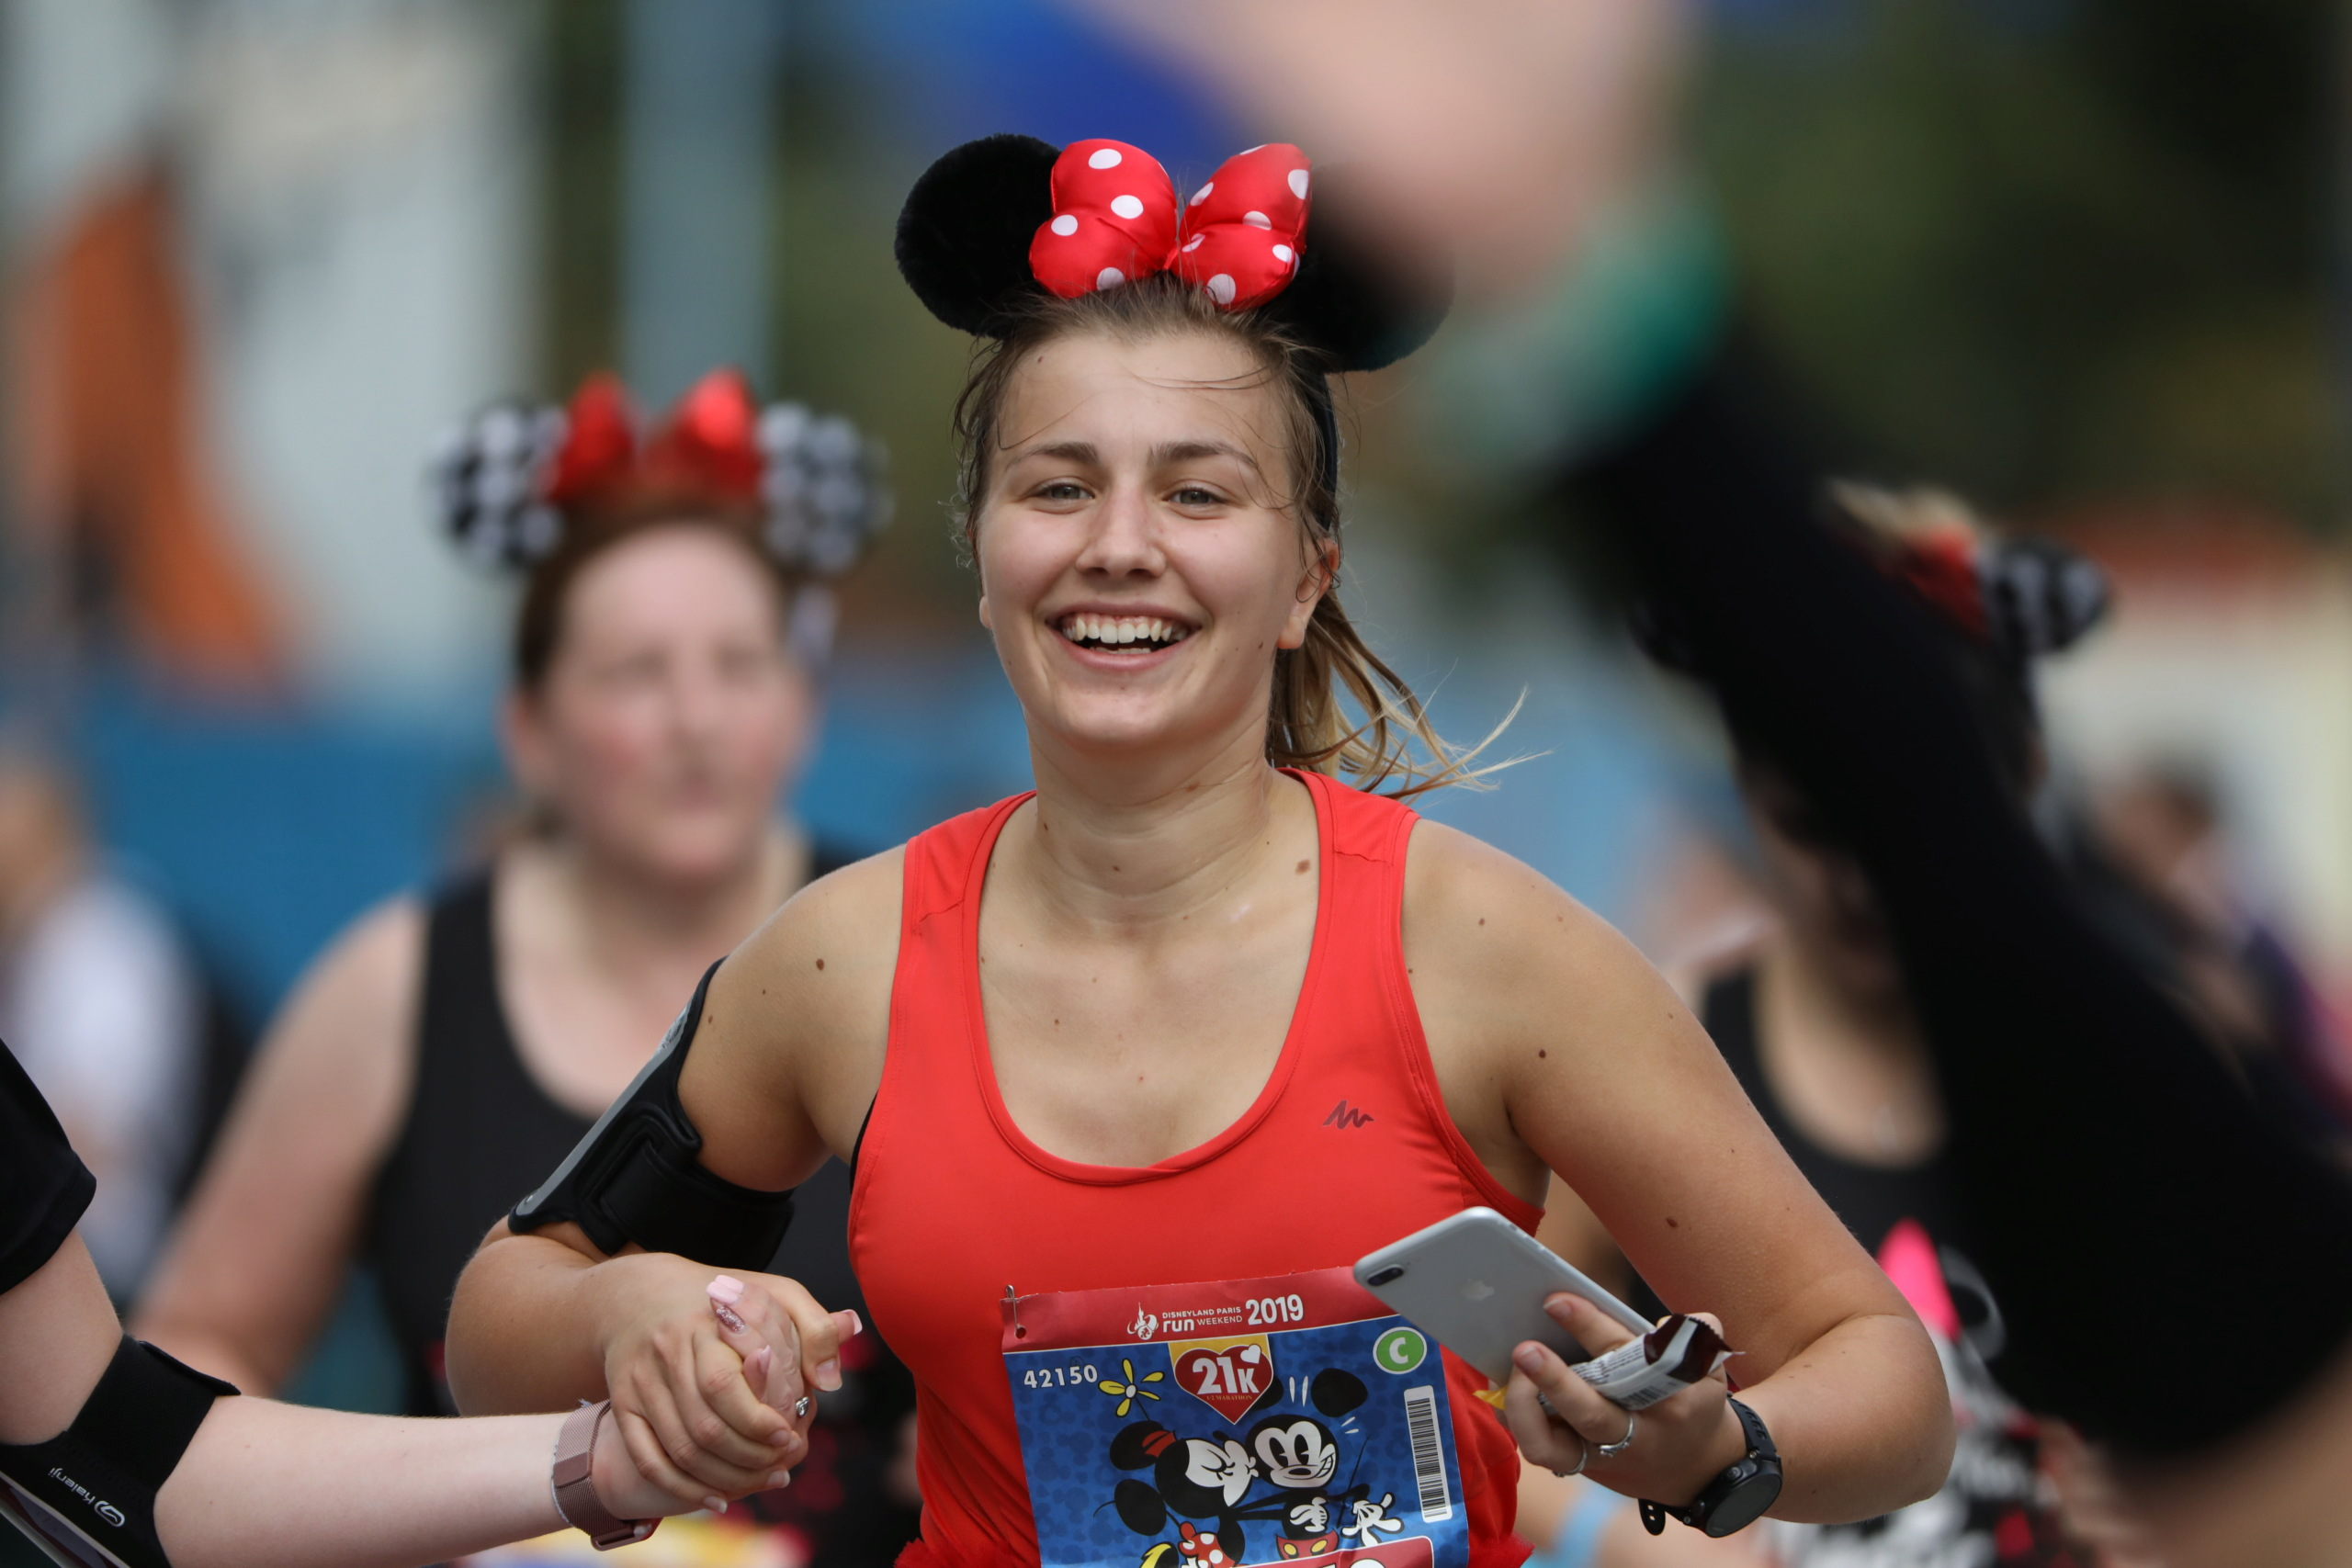 2019 - Disneyland Paris Run Weekend - Pagina 3 21k_1410